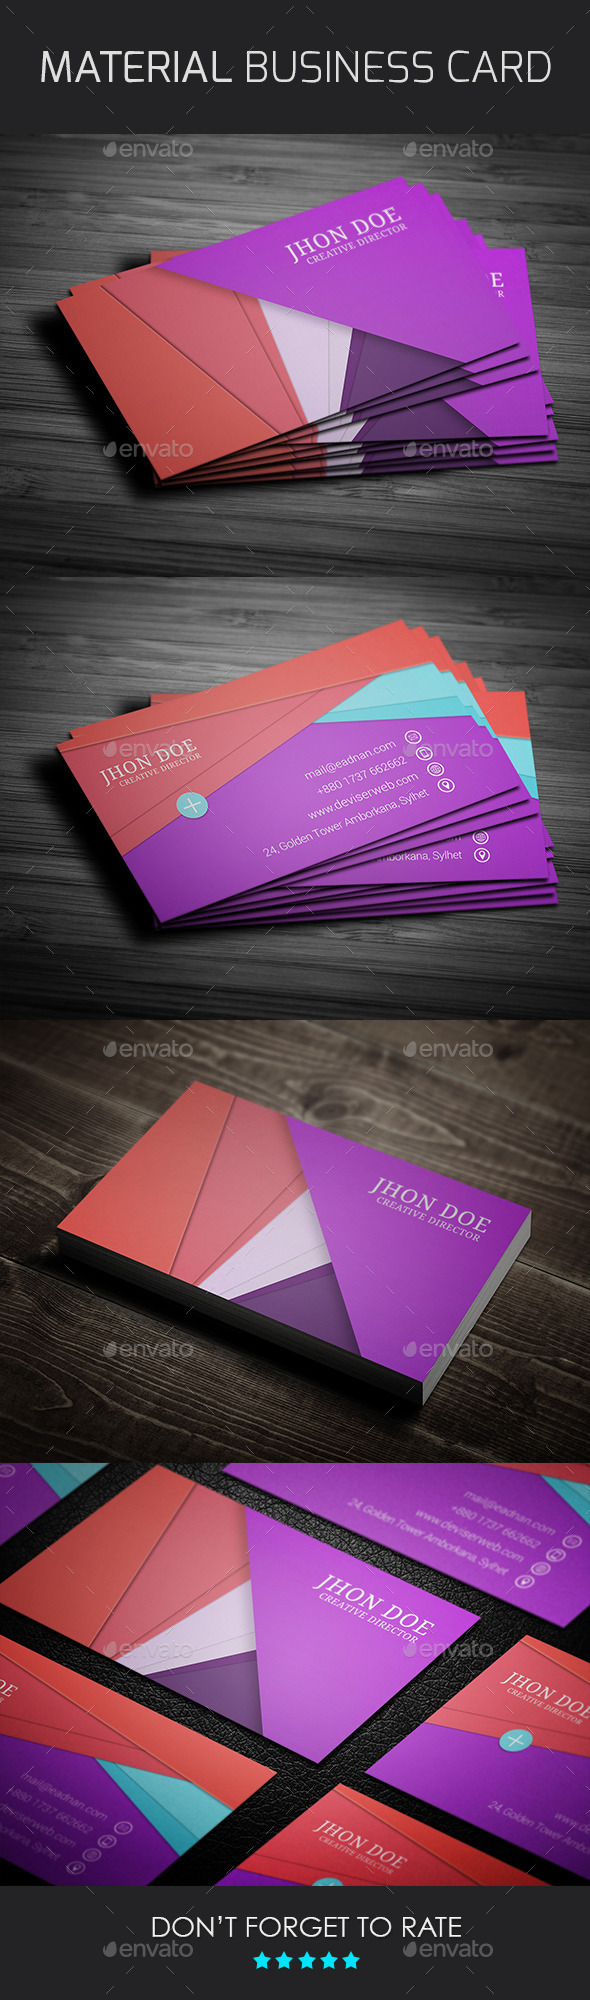 Material Design Business Card Template by rtralrayhan | GraphicRiver